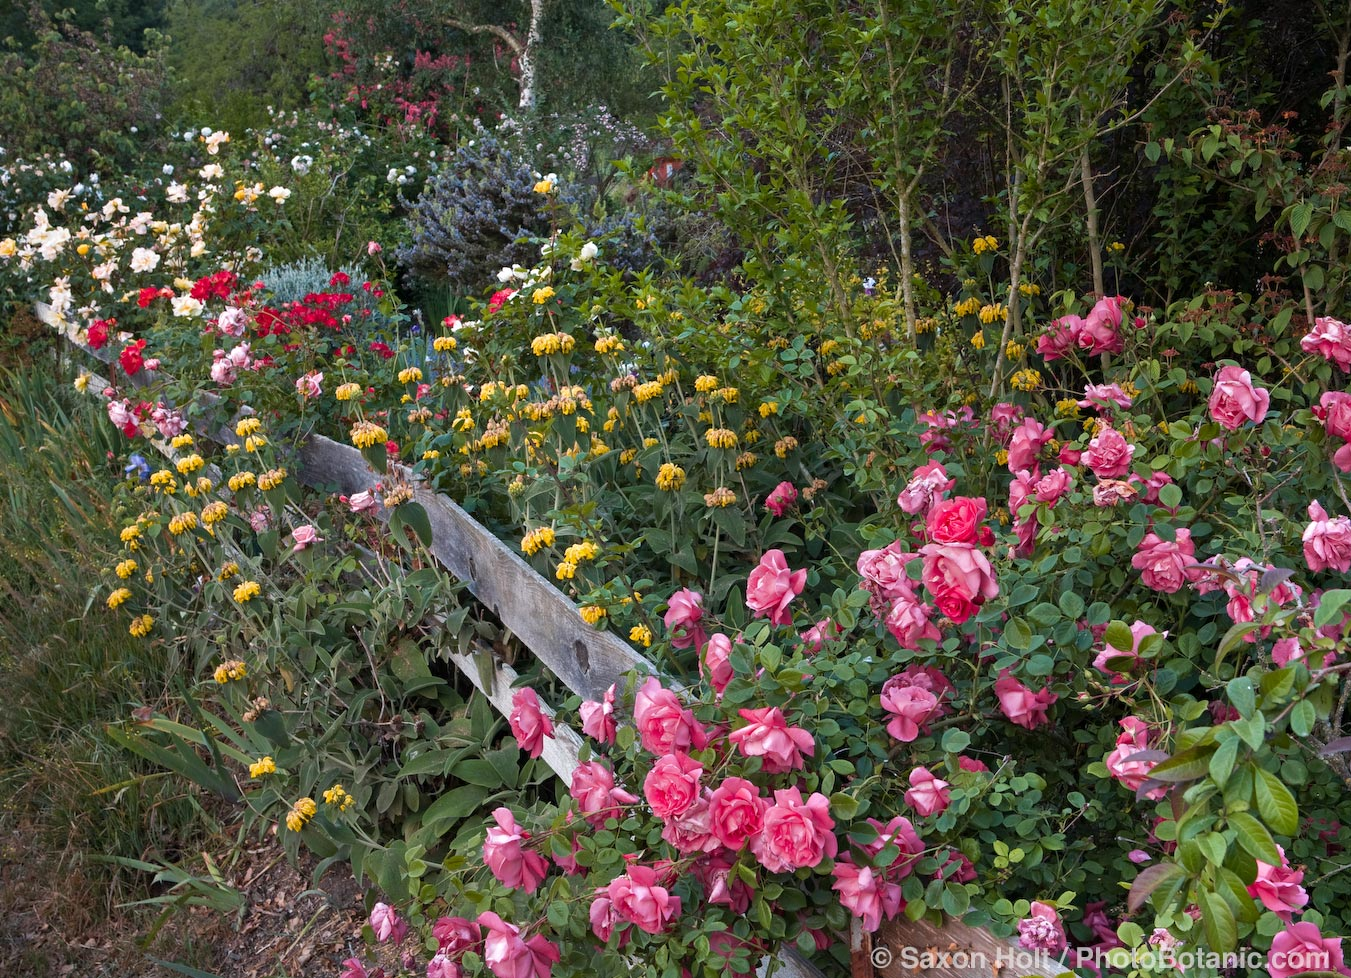 Old fence with flowers and roses (pink American Beauty) and drought tolerant plants (Phlomis) Maile Arnold California country garden